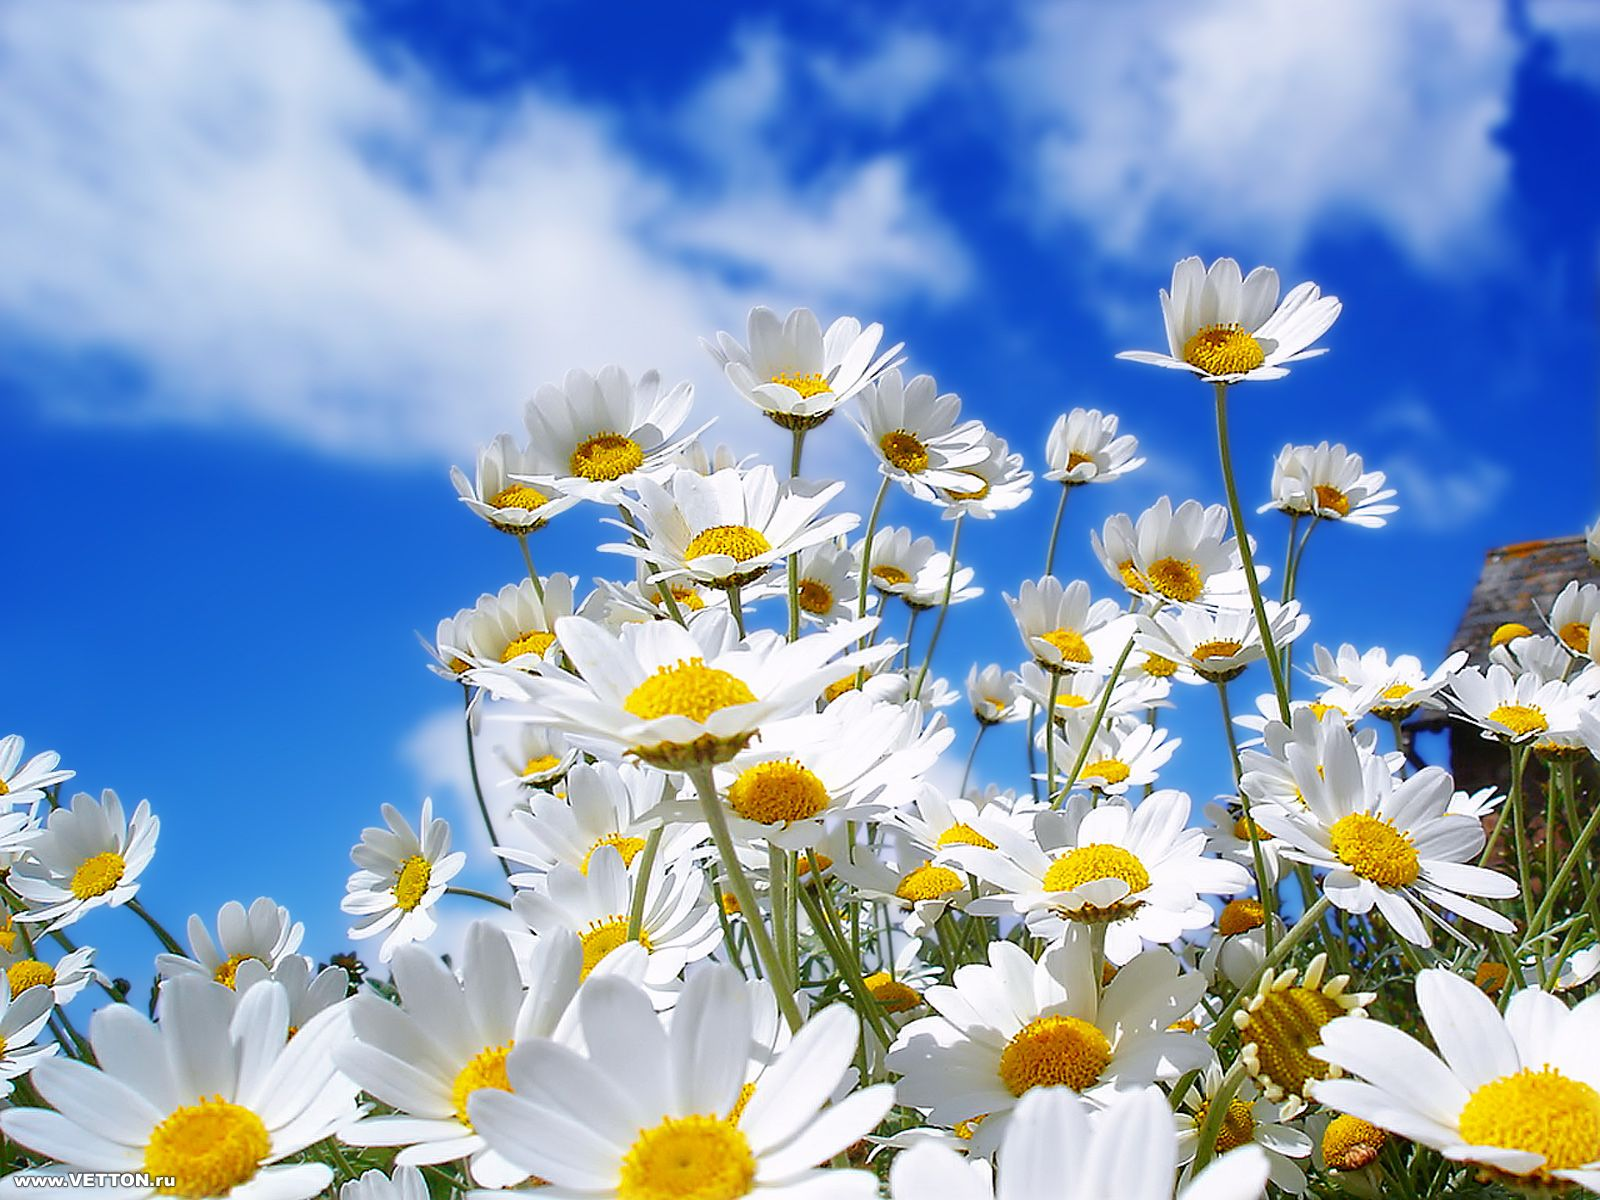 Beautiful Spring Pictures Inspiration With Spring Daisies Image